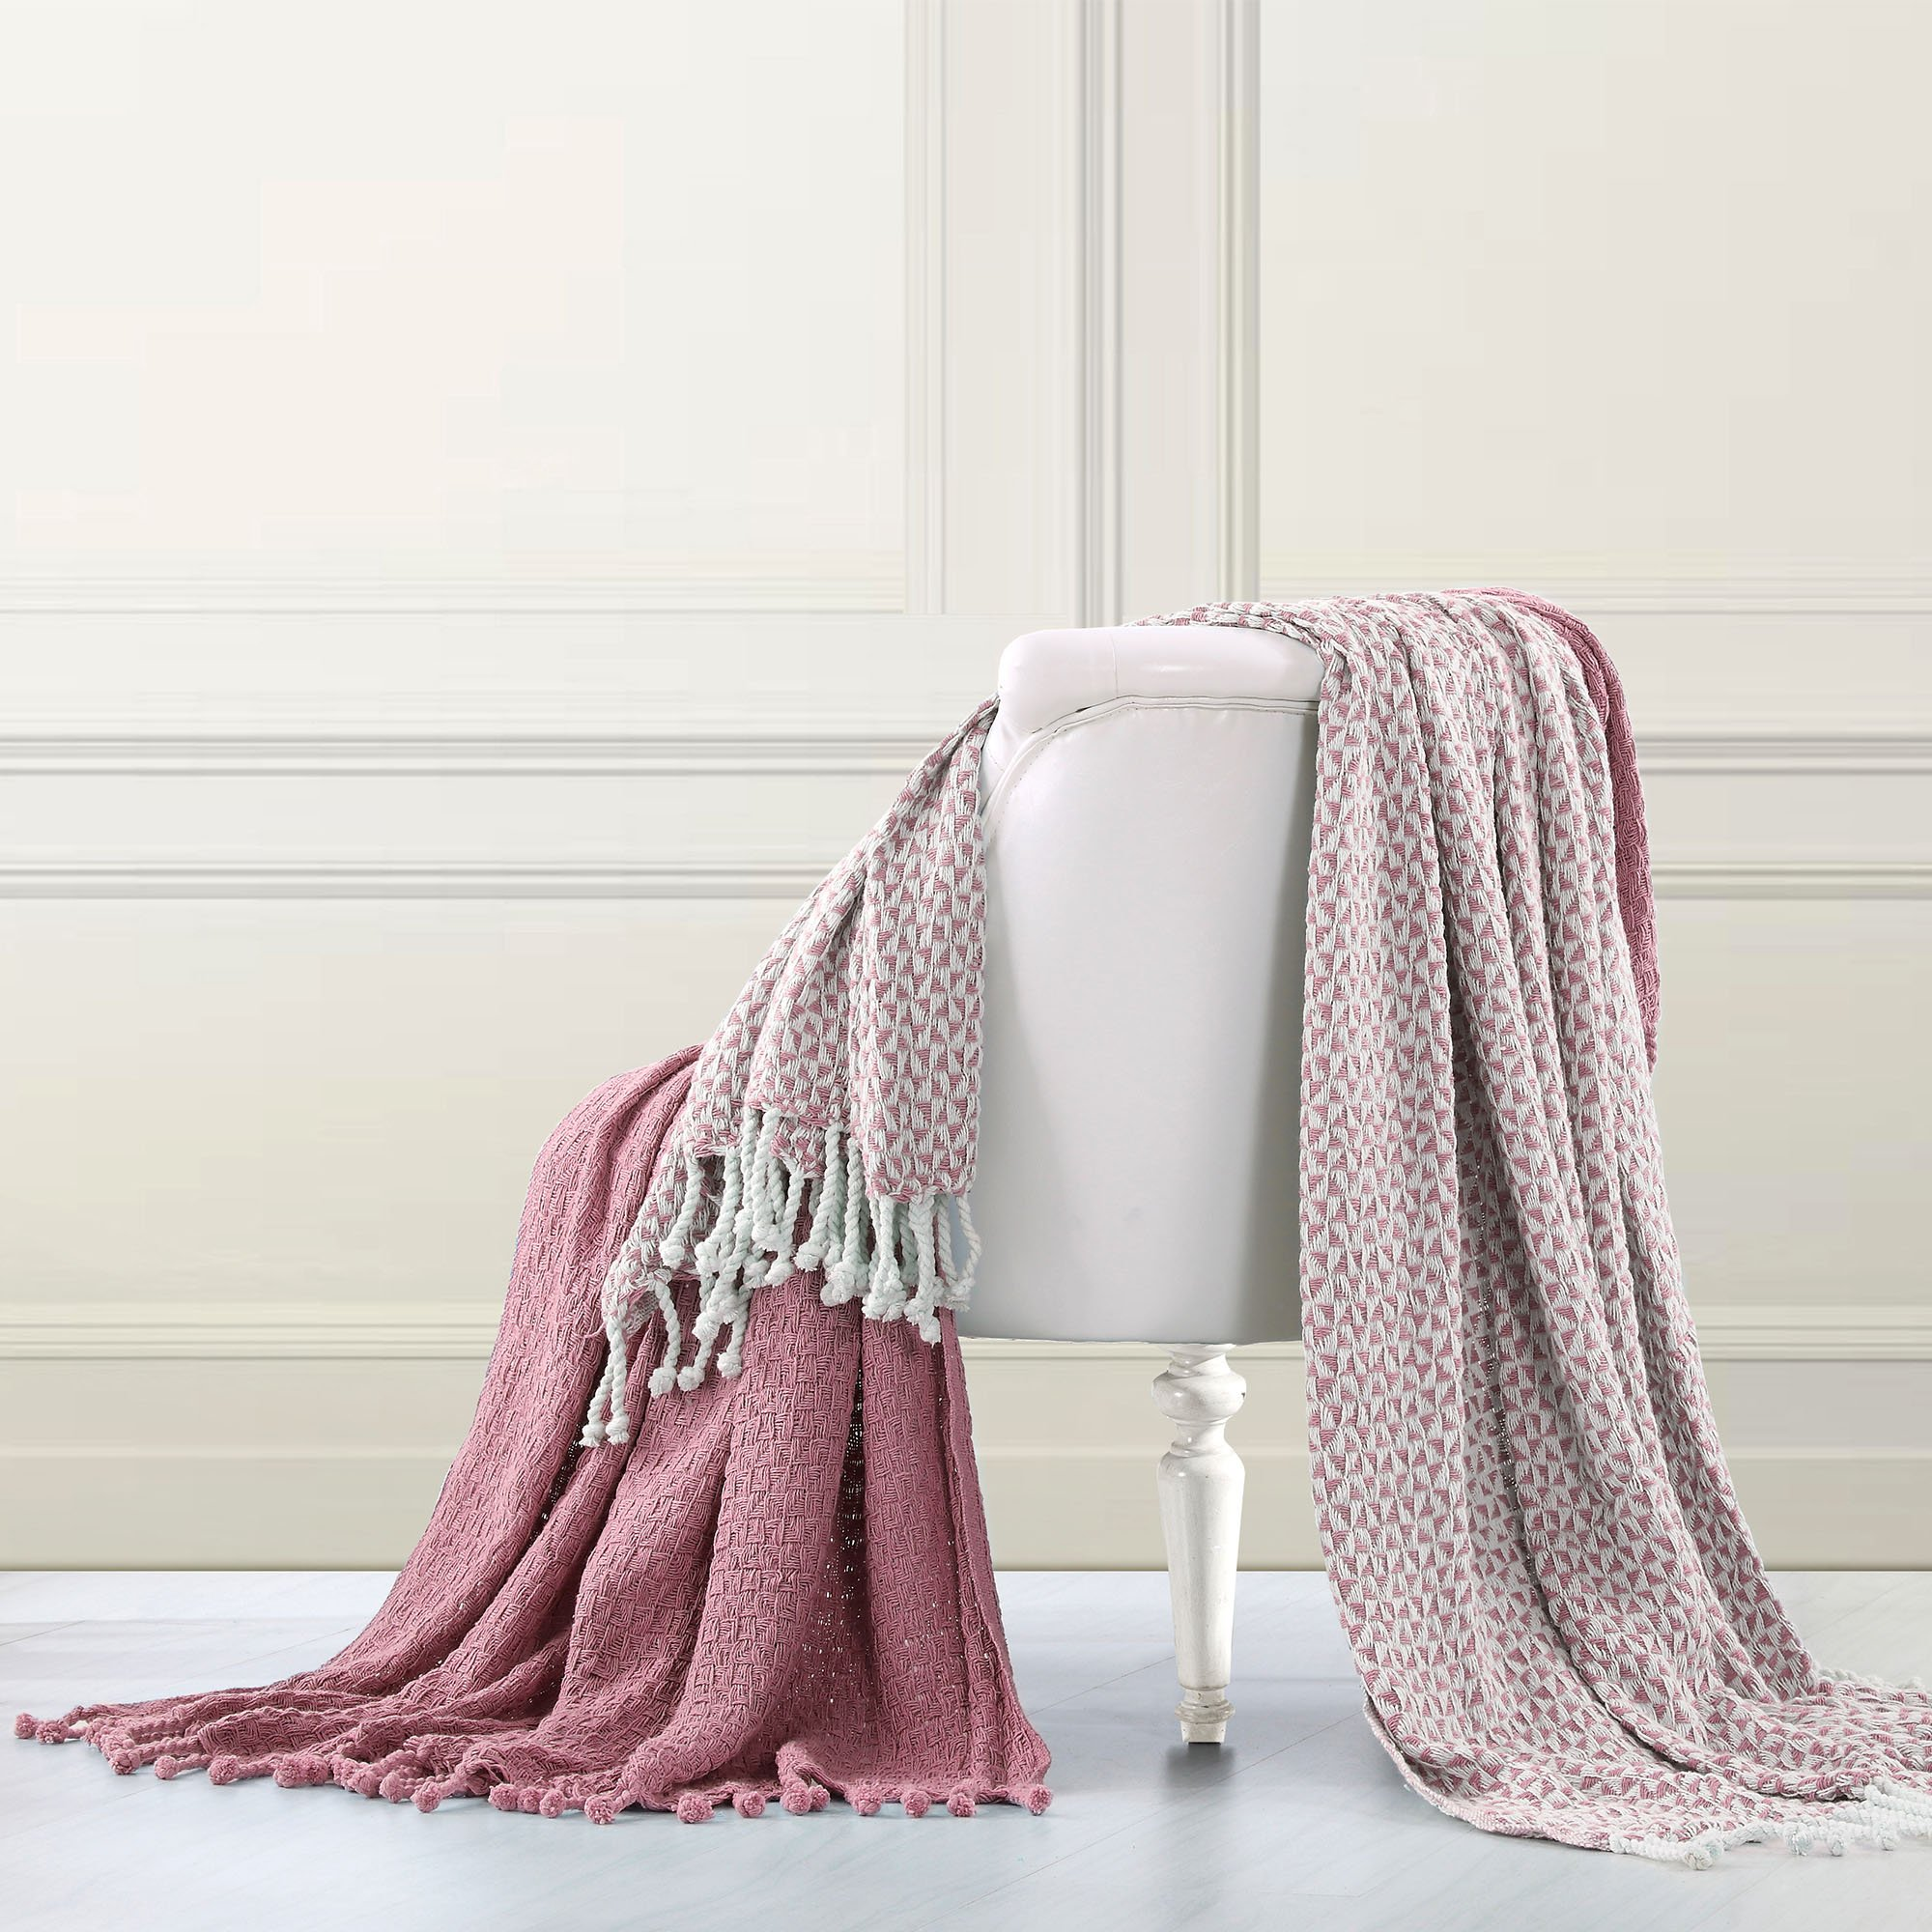 Amrapur Overseas | Picasso 100% Cotton 2 Pack Throw Blanket (Wood Rose)